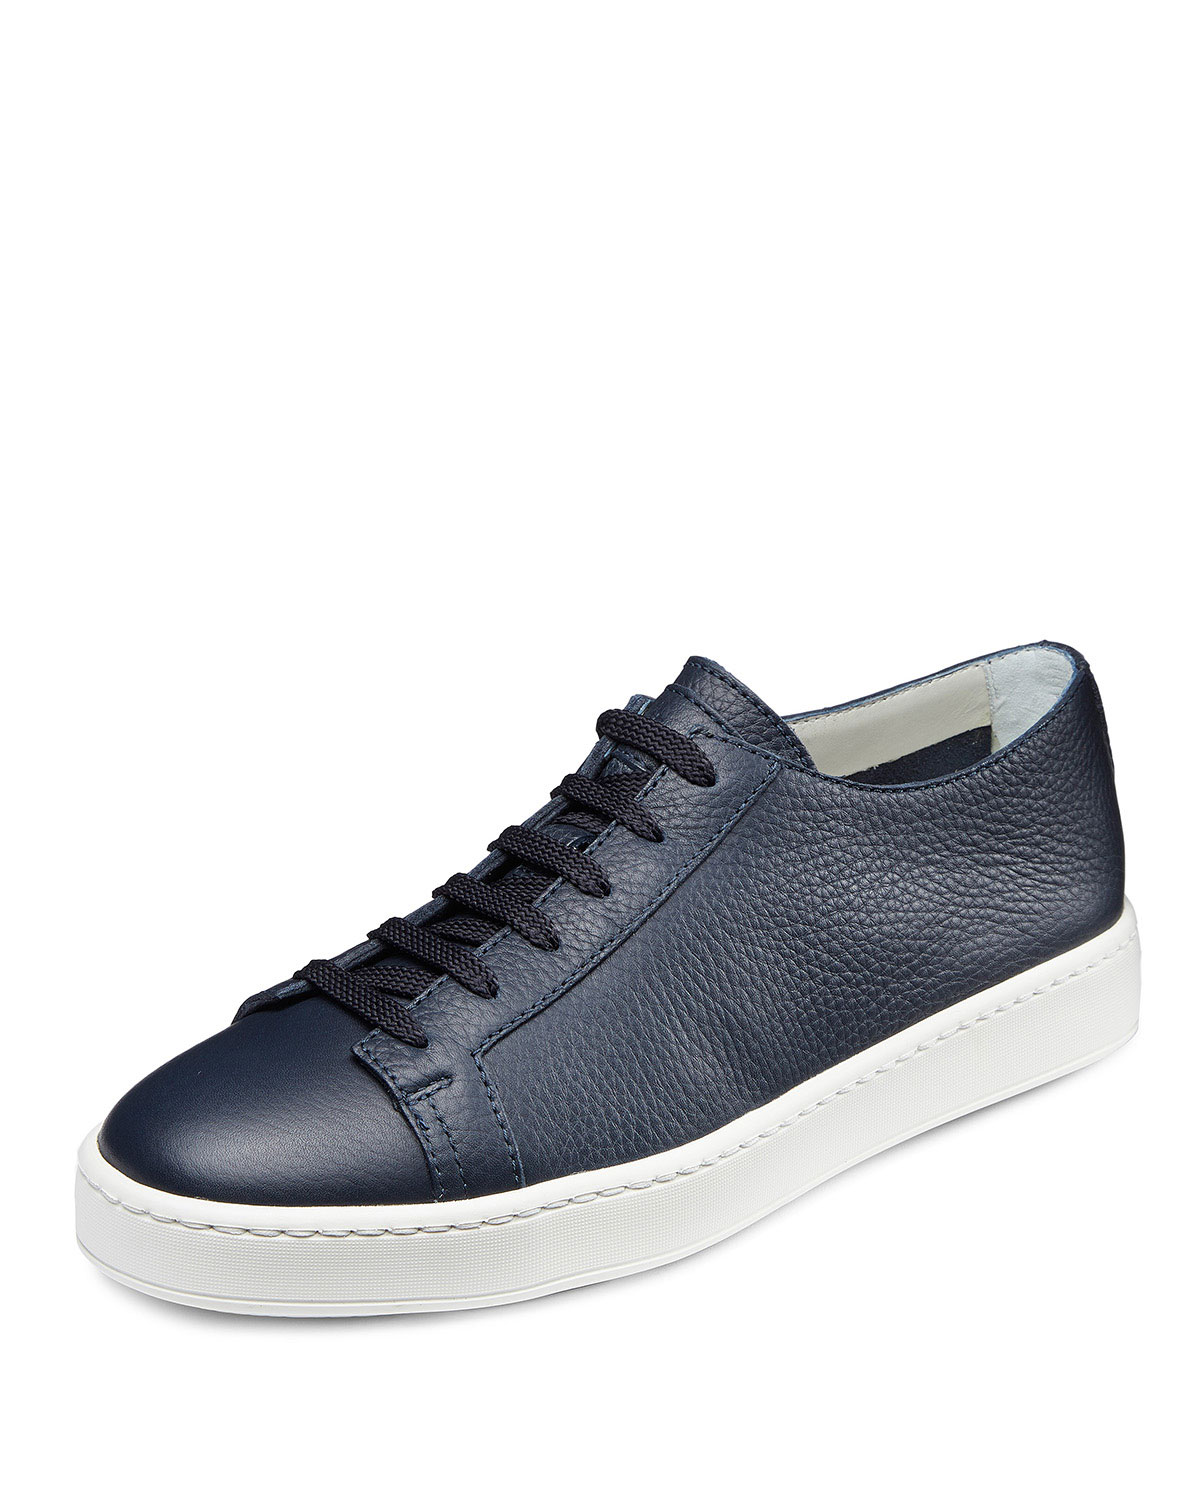 Santoni Navy Blue Clean Iconic Leather Low-Top Sneakers